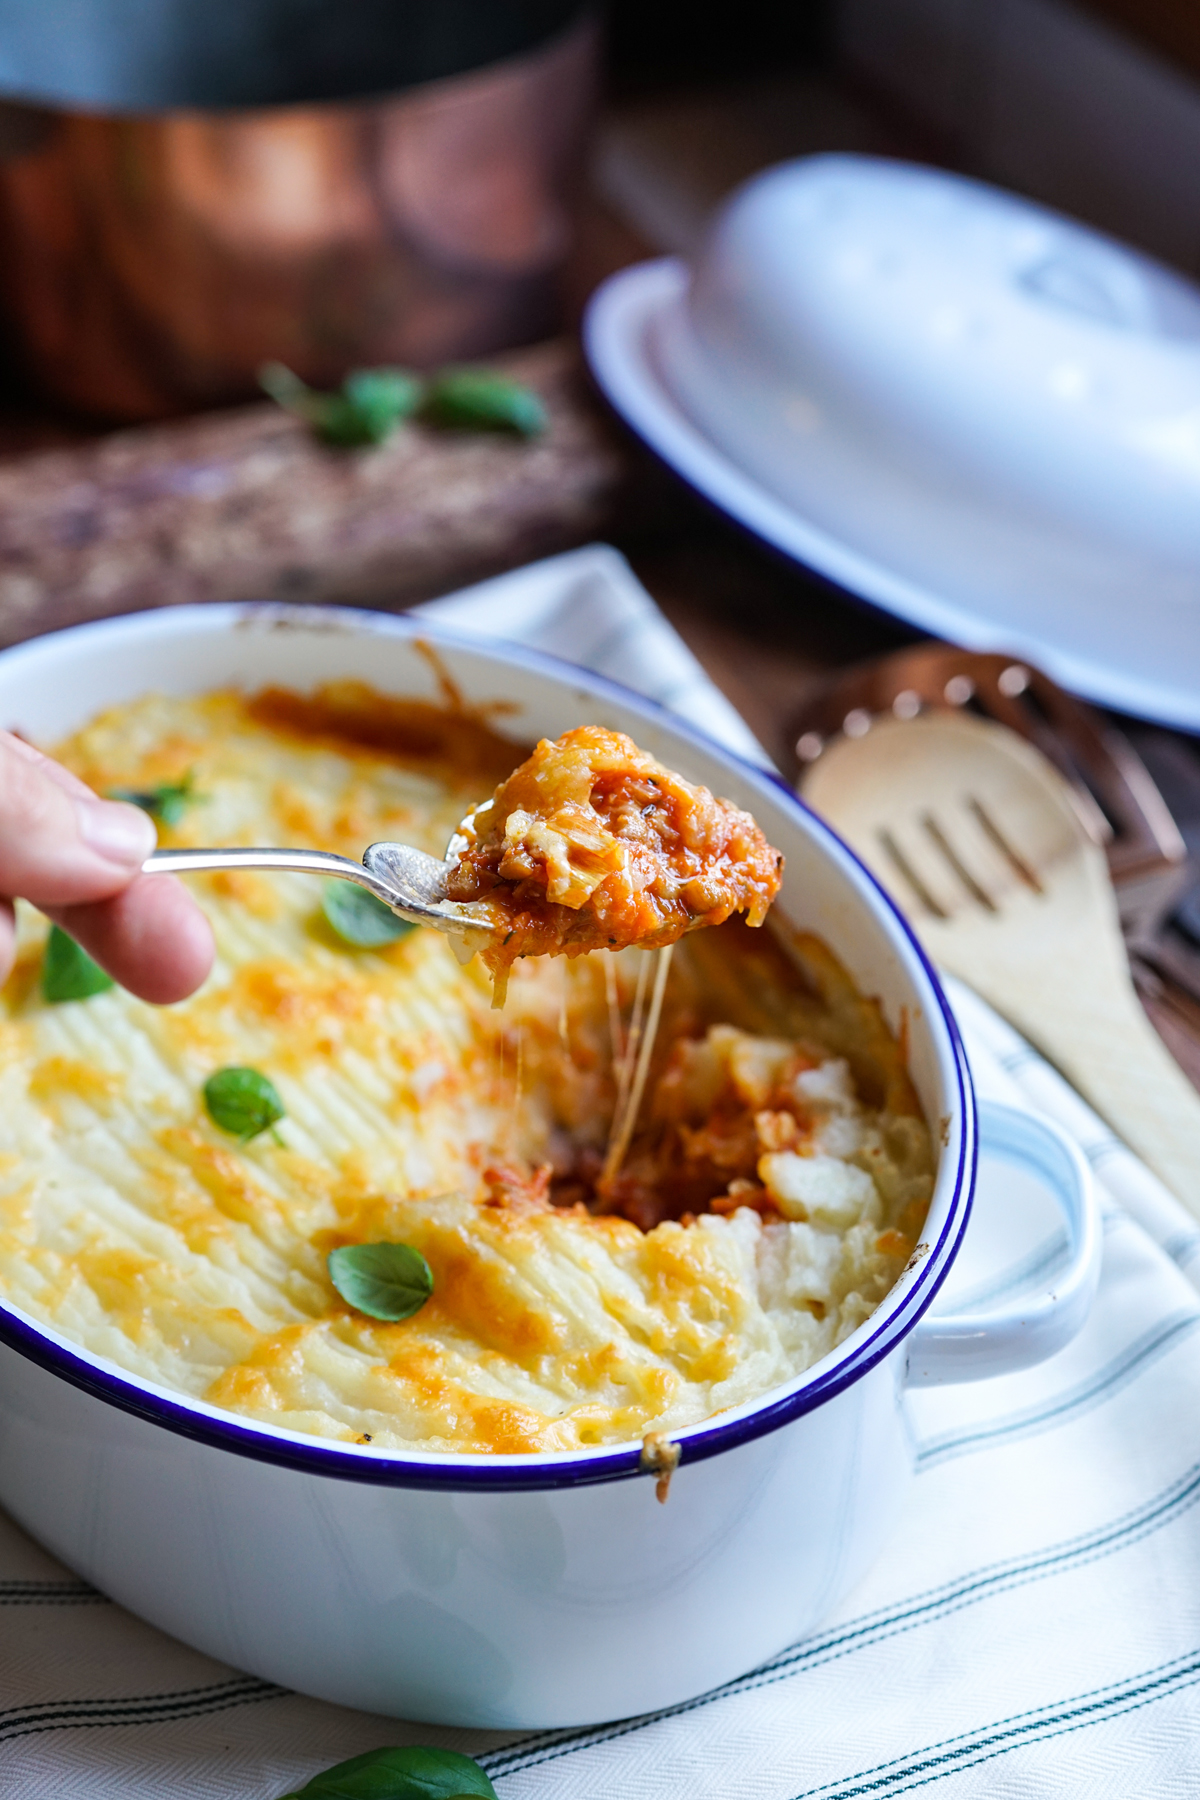 Lentil Cottage Pie with Cheesy Topping